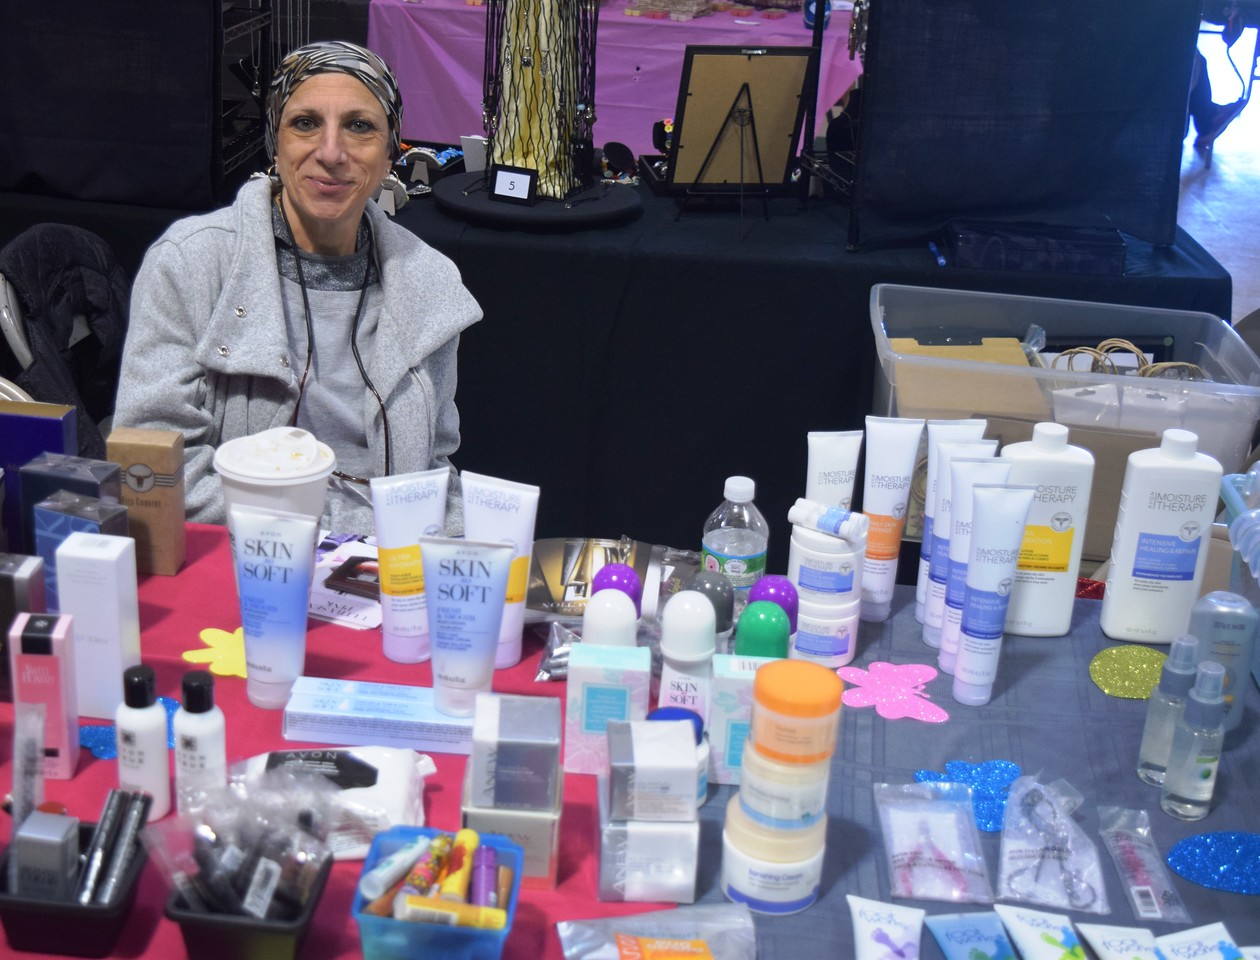 About two dozens crafters and other vendors attended the Spring Craft and Vendor Show in Taylor.